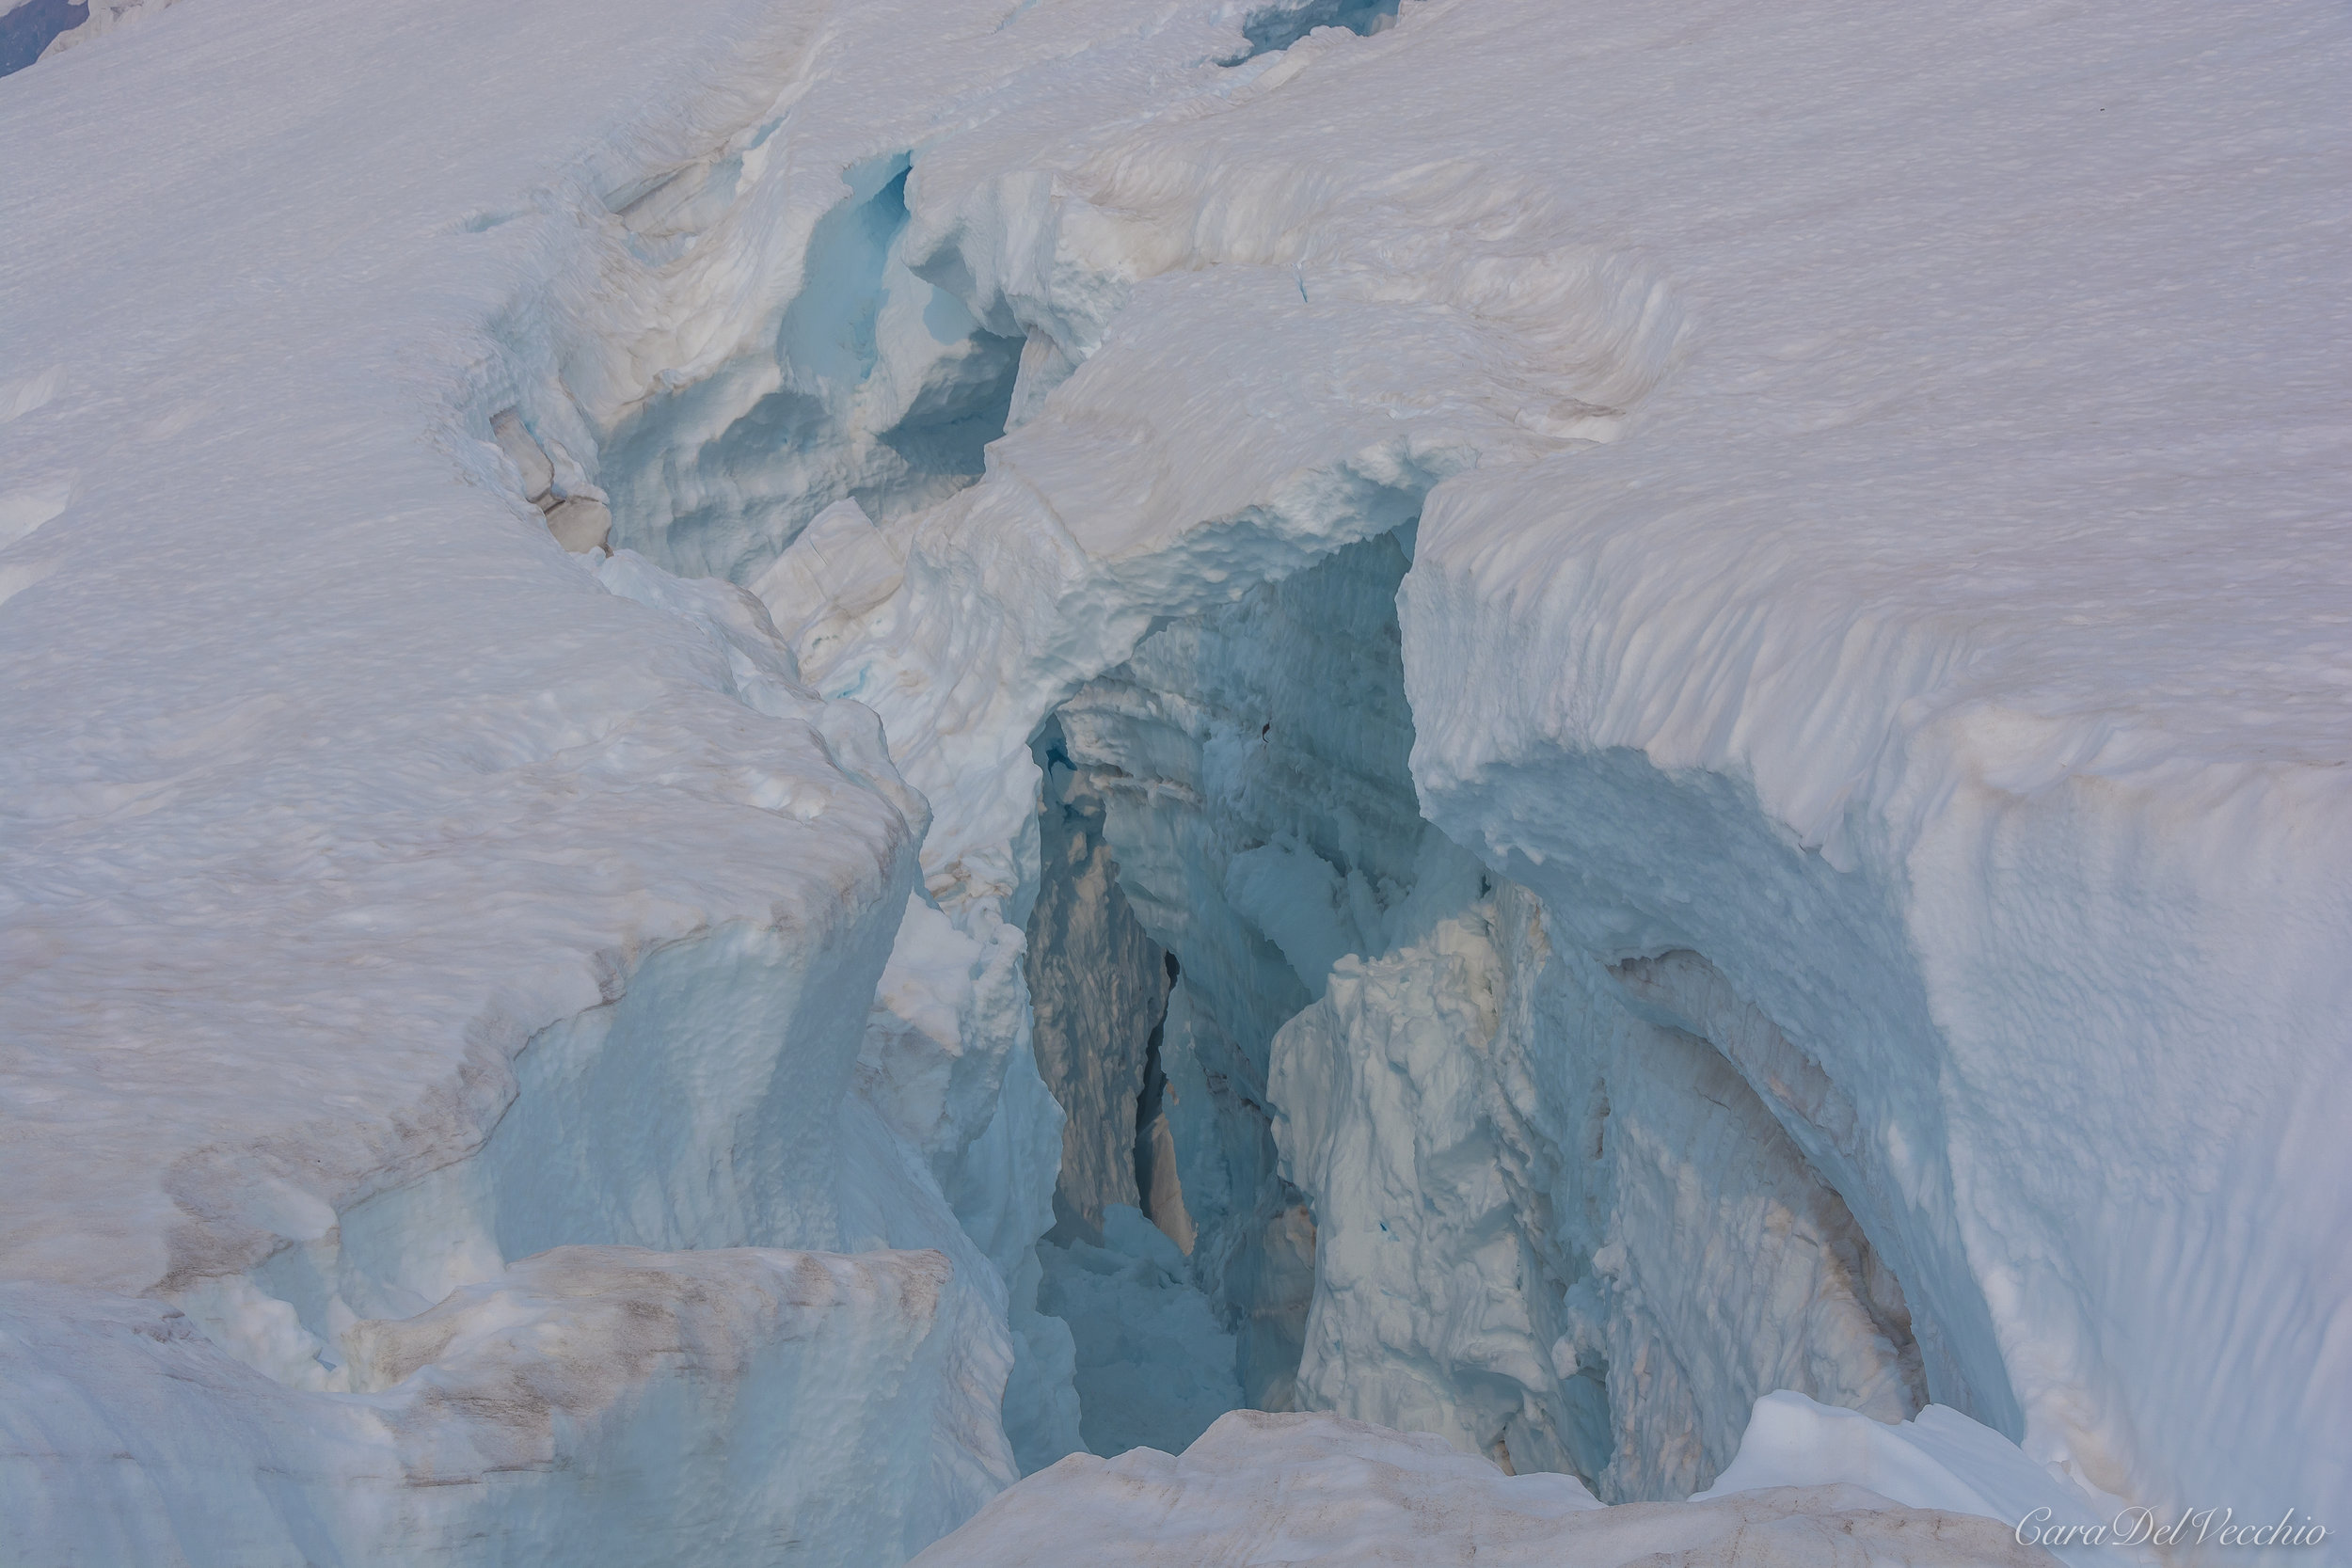 Looking into a deep crevasse; note collapsing ice bridge.